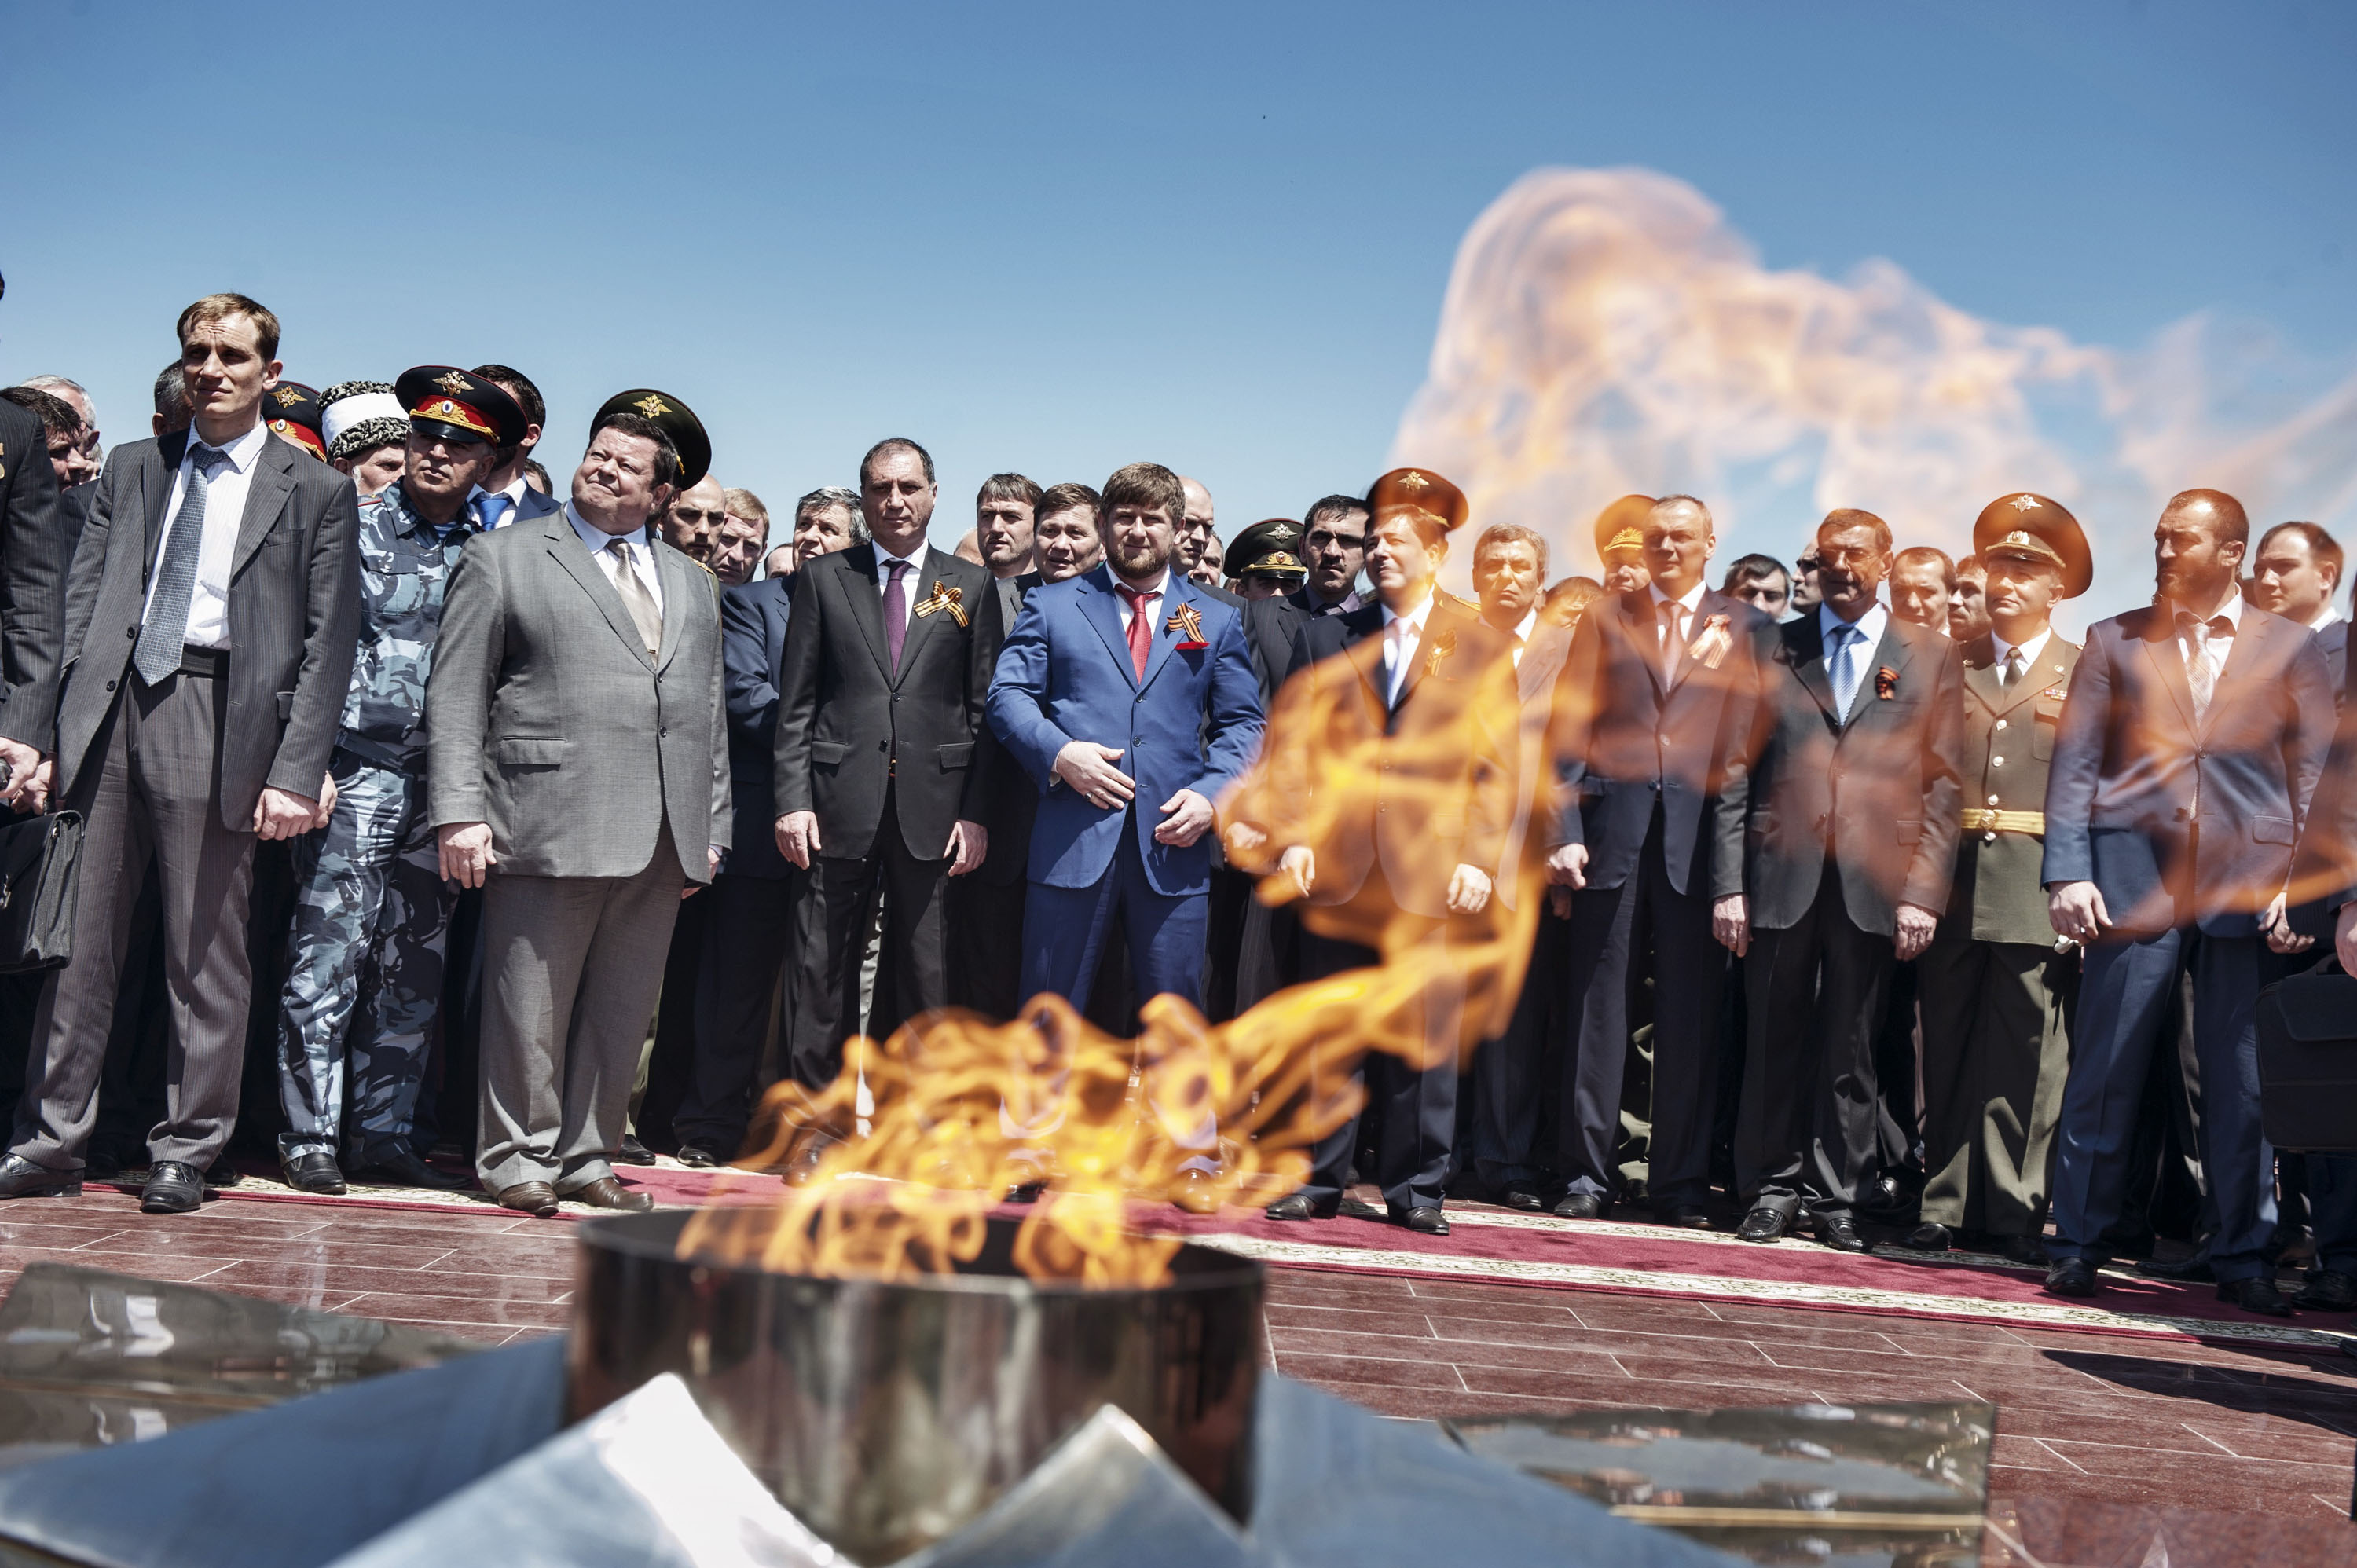 Kadyrov, center, stands with Chechen and Russian officials at a ceremony in Grozny in 2010 commemorating the Soviet victory in World War II.